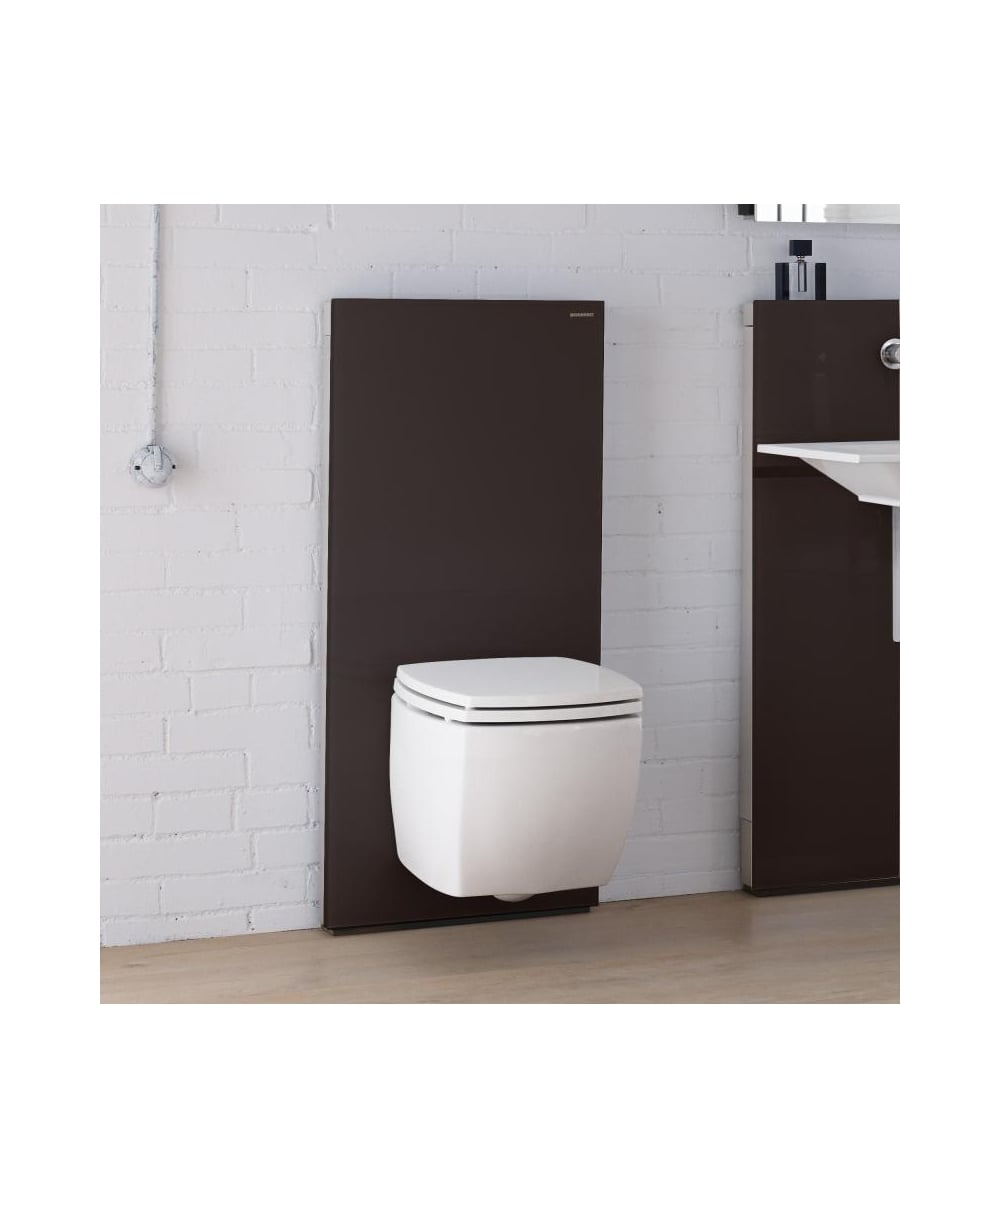 geberit wc trendy cistern u element for wallhung wc. Black Bedroom Furniture Sets. Home Design Ideas